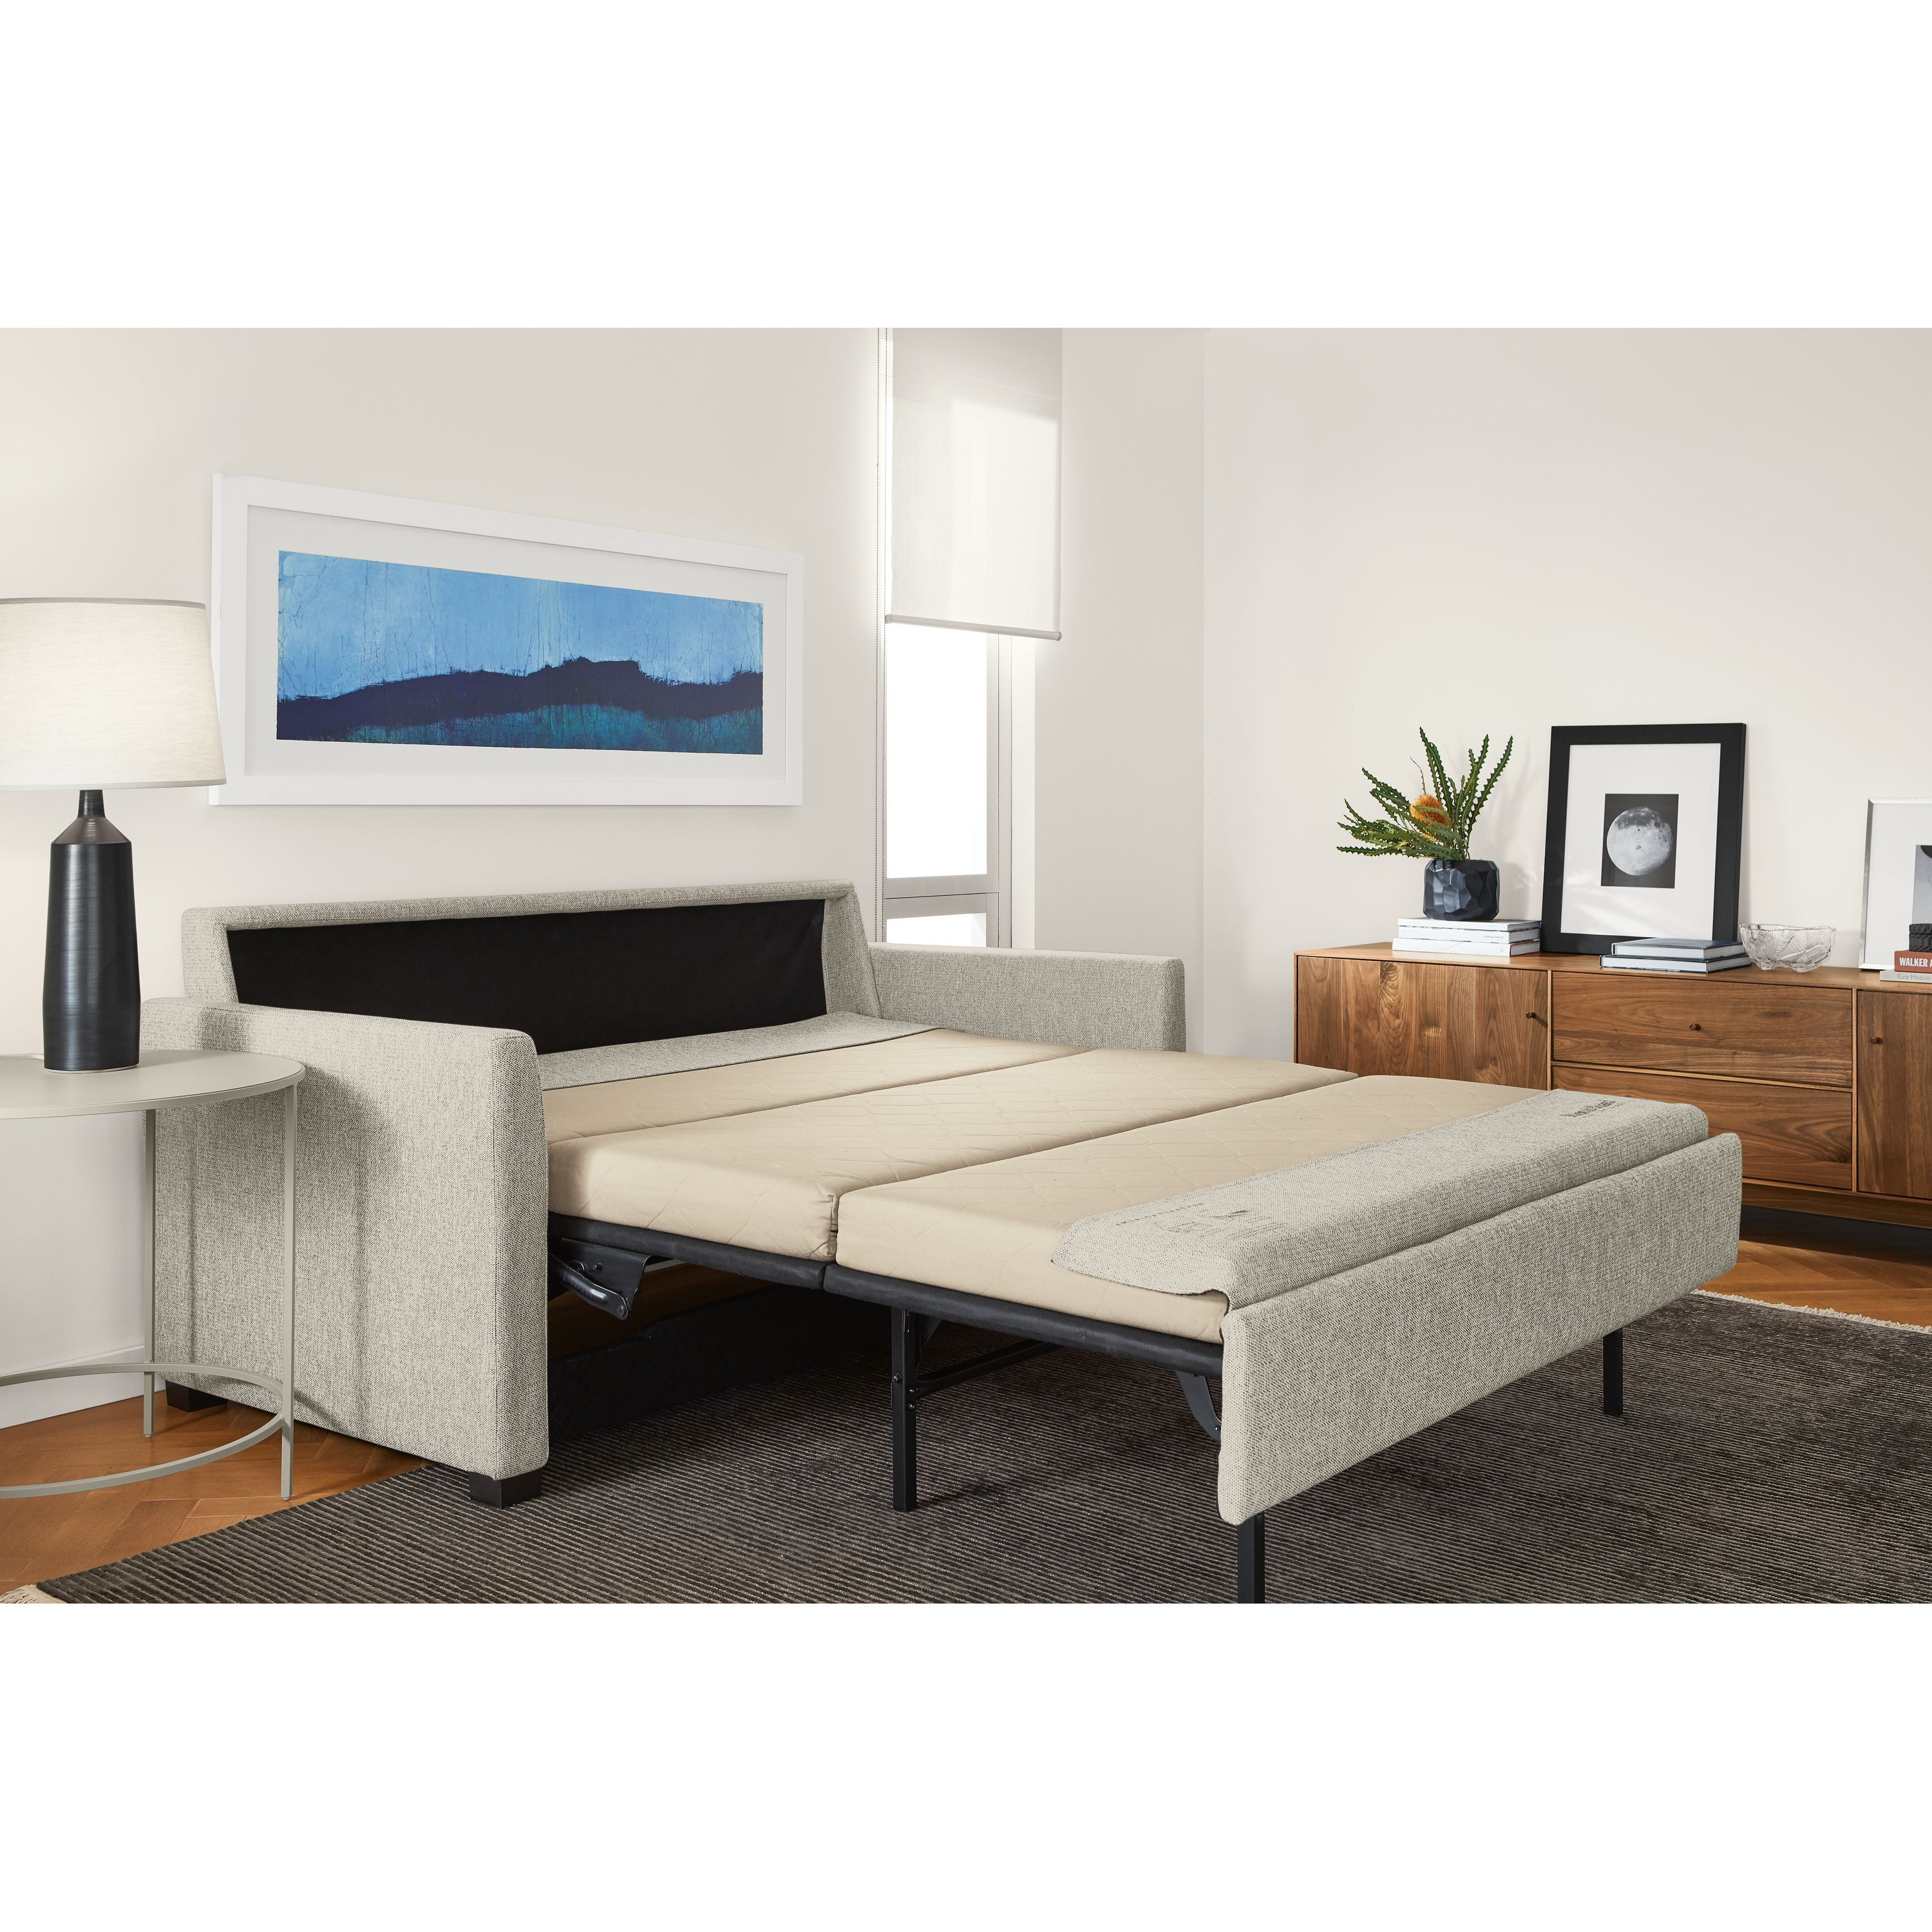 Berin Slope Arm Day & Night Sleeper Sofas With Chaise